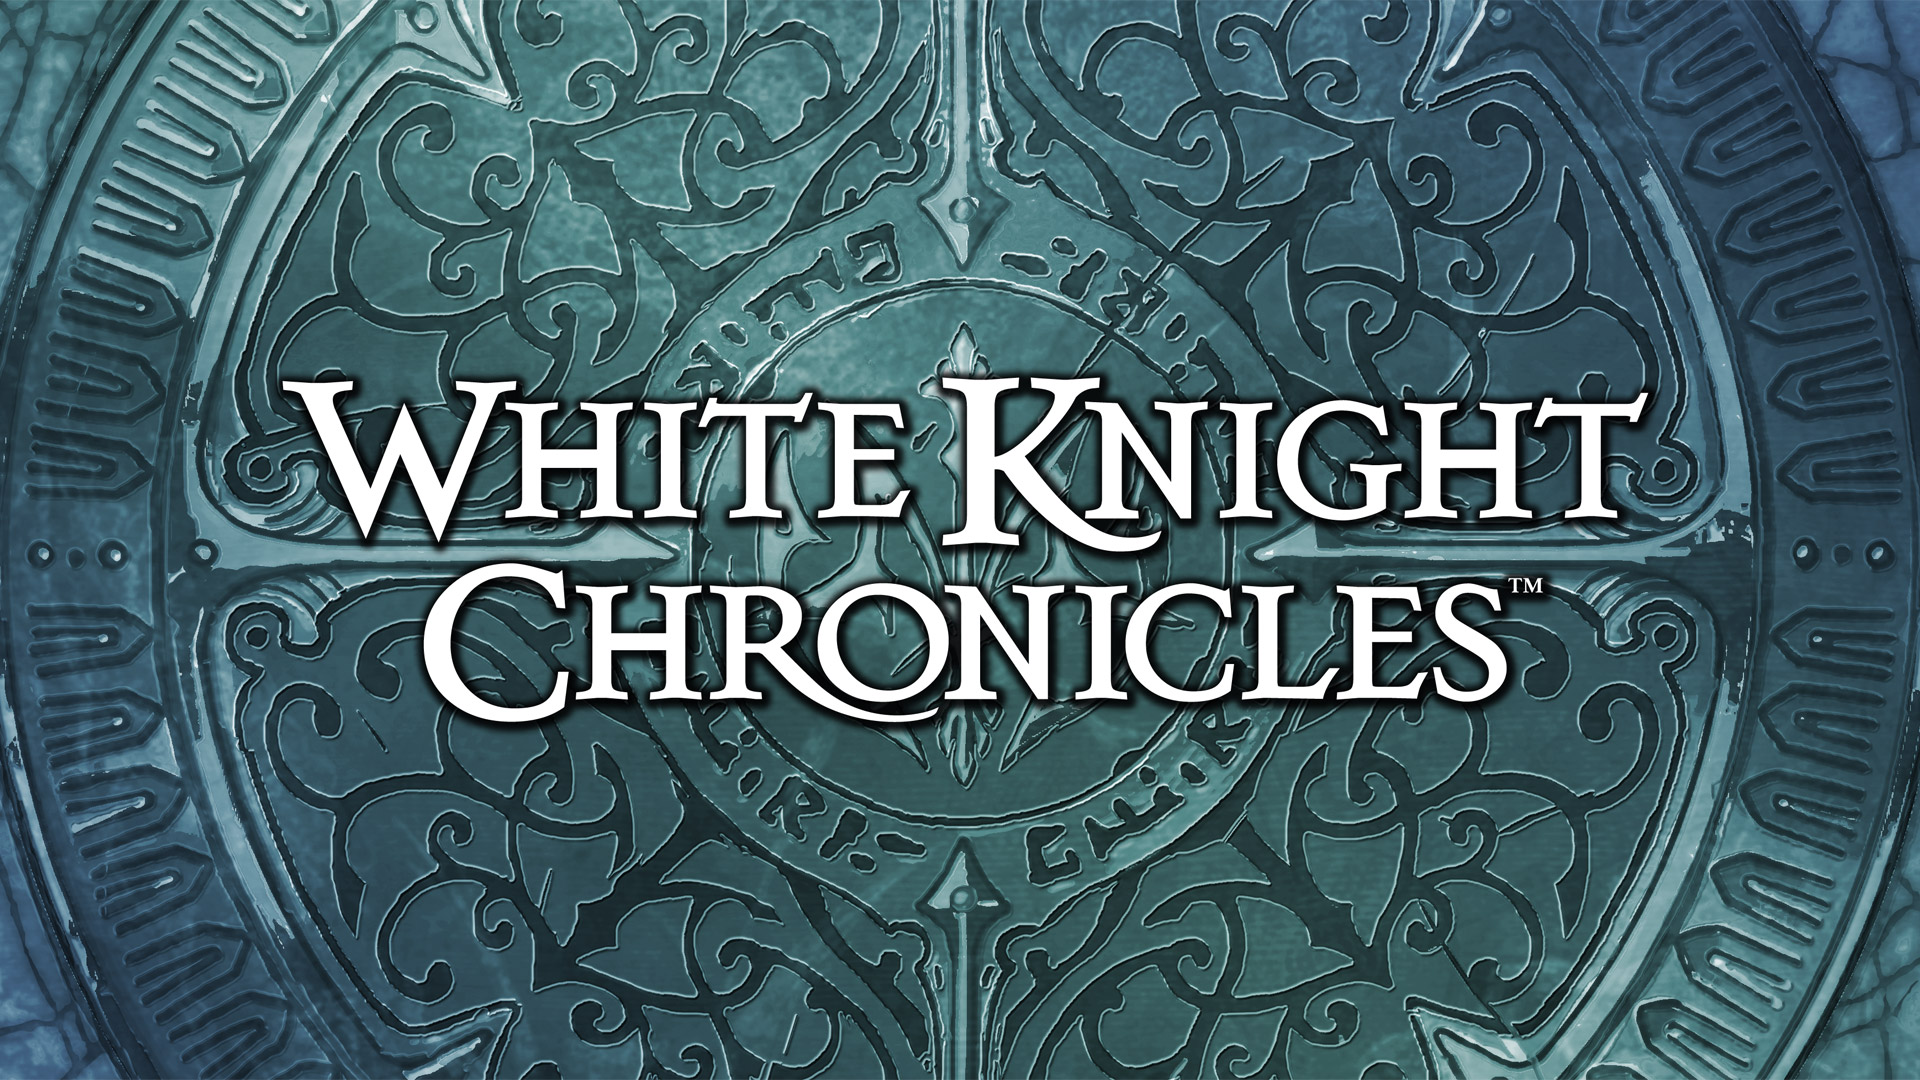 Free White Knight Chronicles Wallpaper in 1920x1080